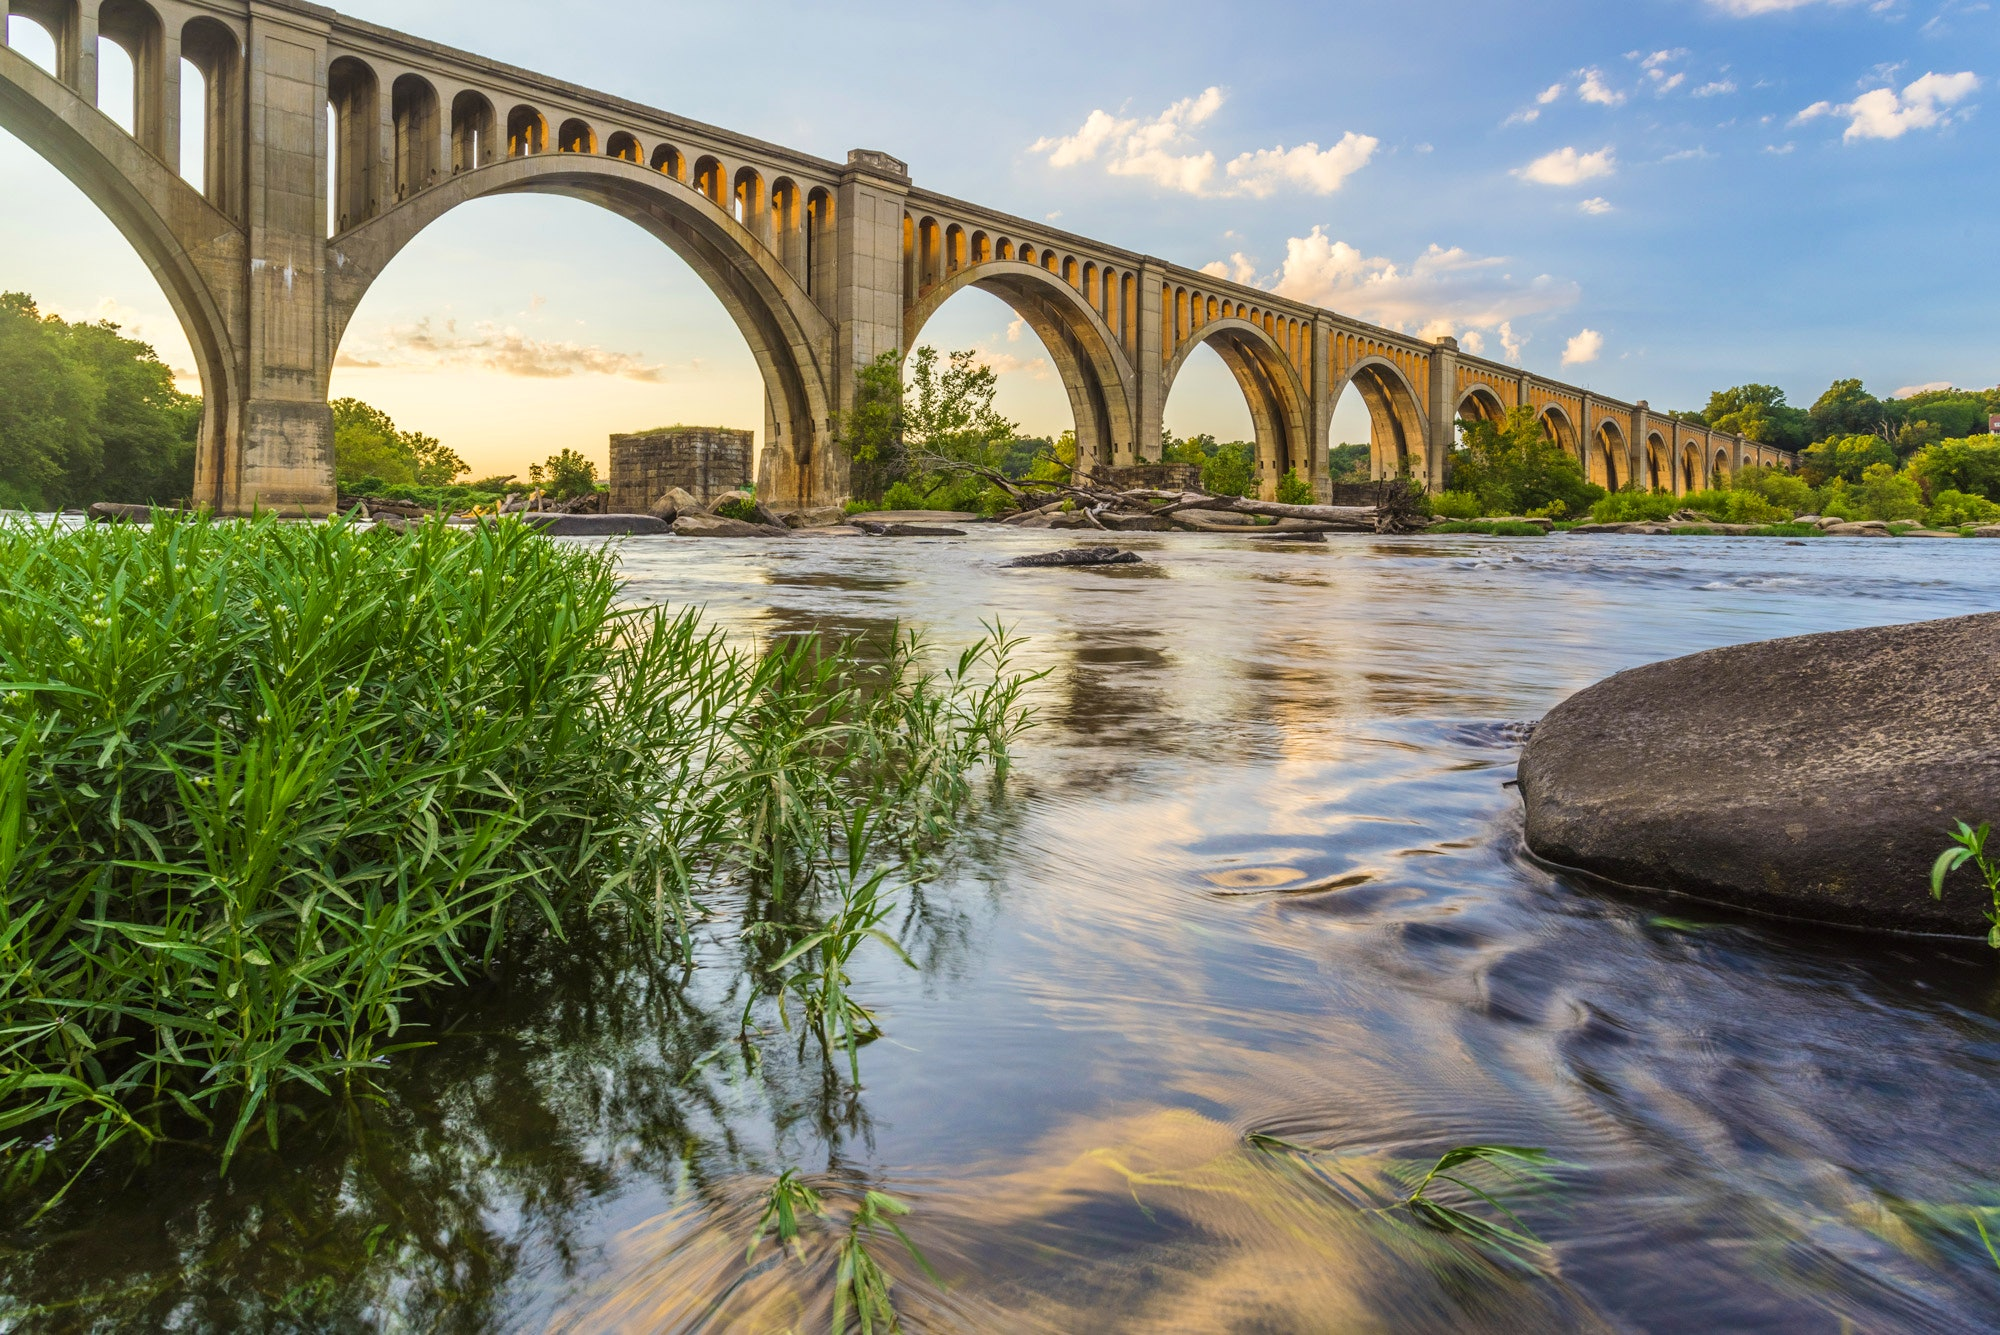 Cyclists, strollers and adrenaline-junkies alike are all drawn to Richmond's James Rivers © Xavier Ascanio / Shutterstock